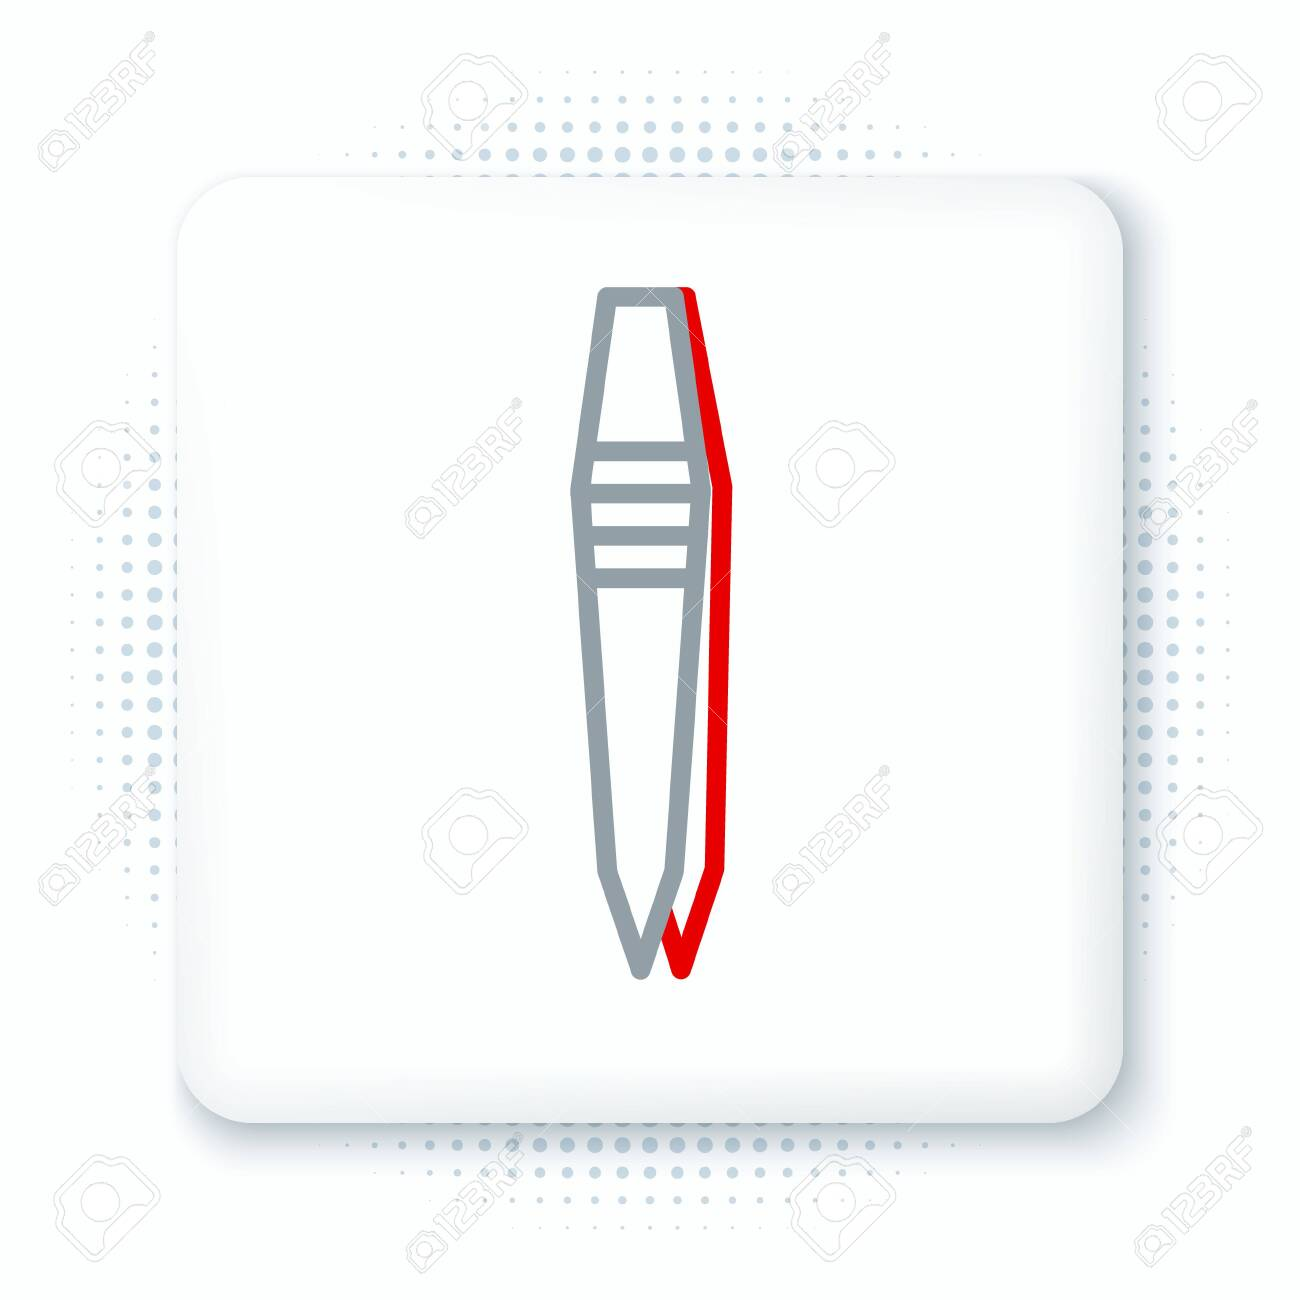 Line Tweezers icon isolated on white background. Colorful outline concept. Vector. - 151055727